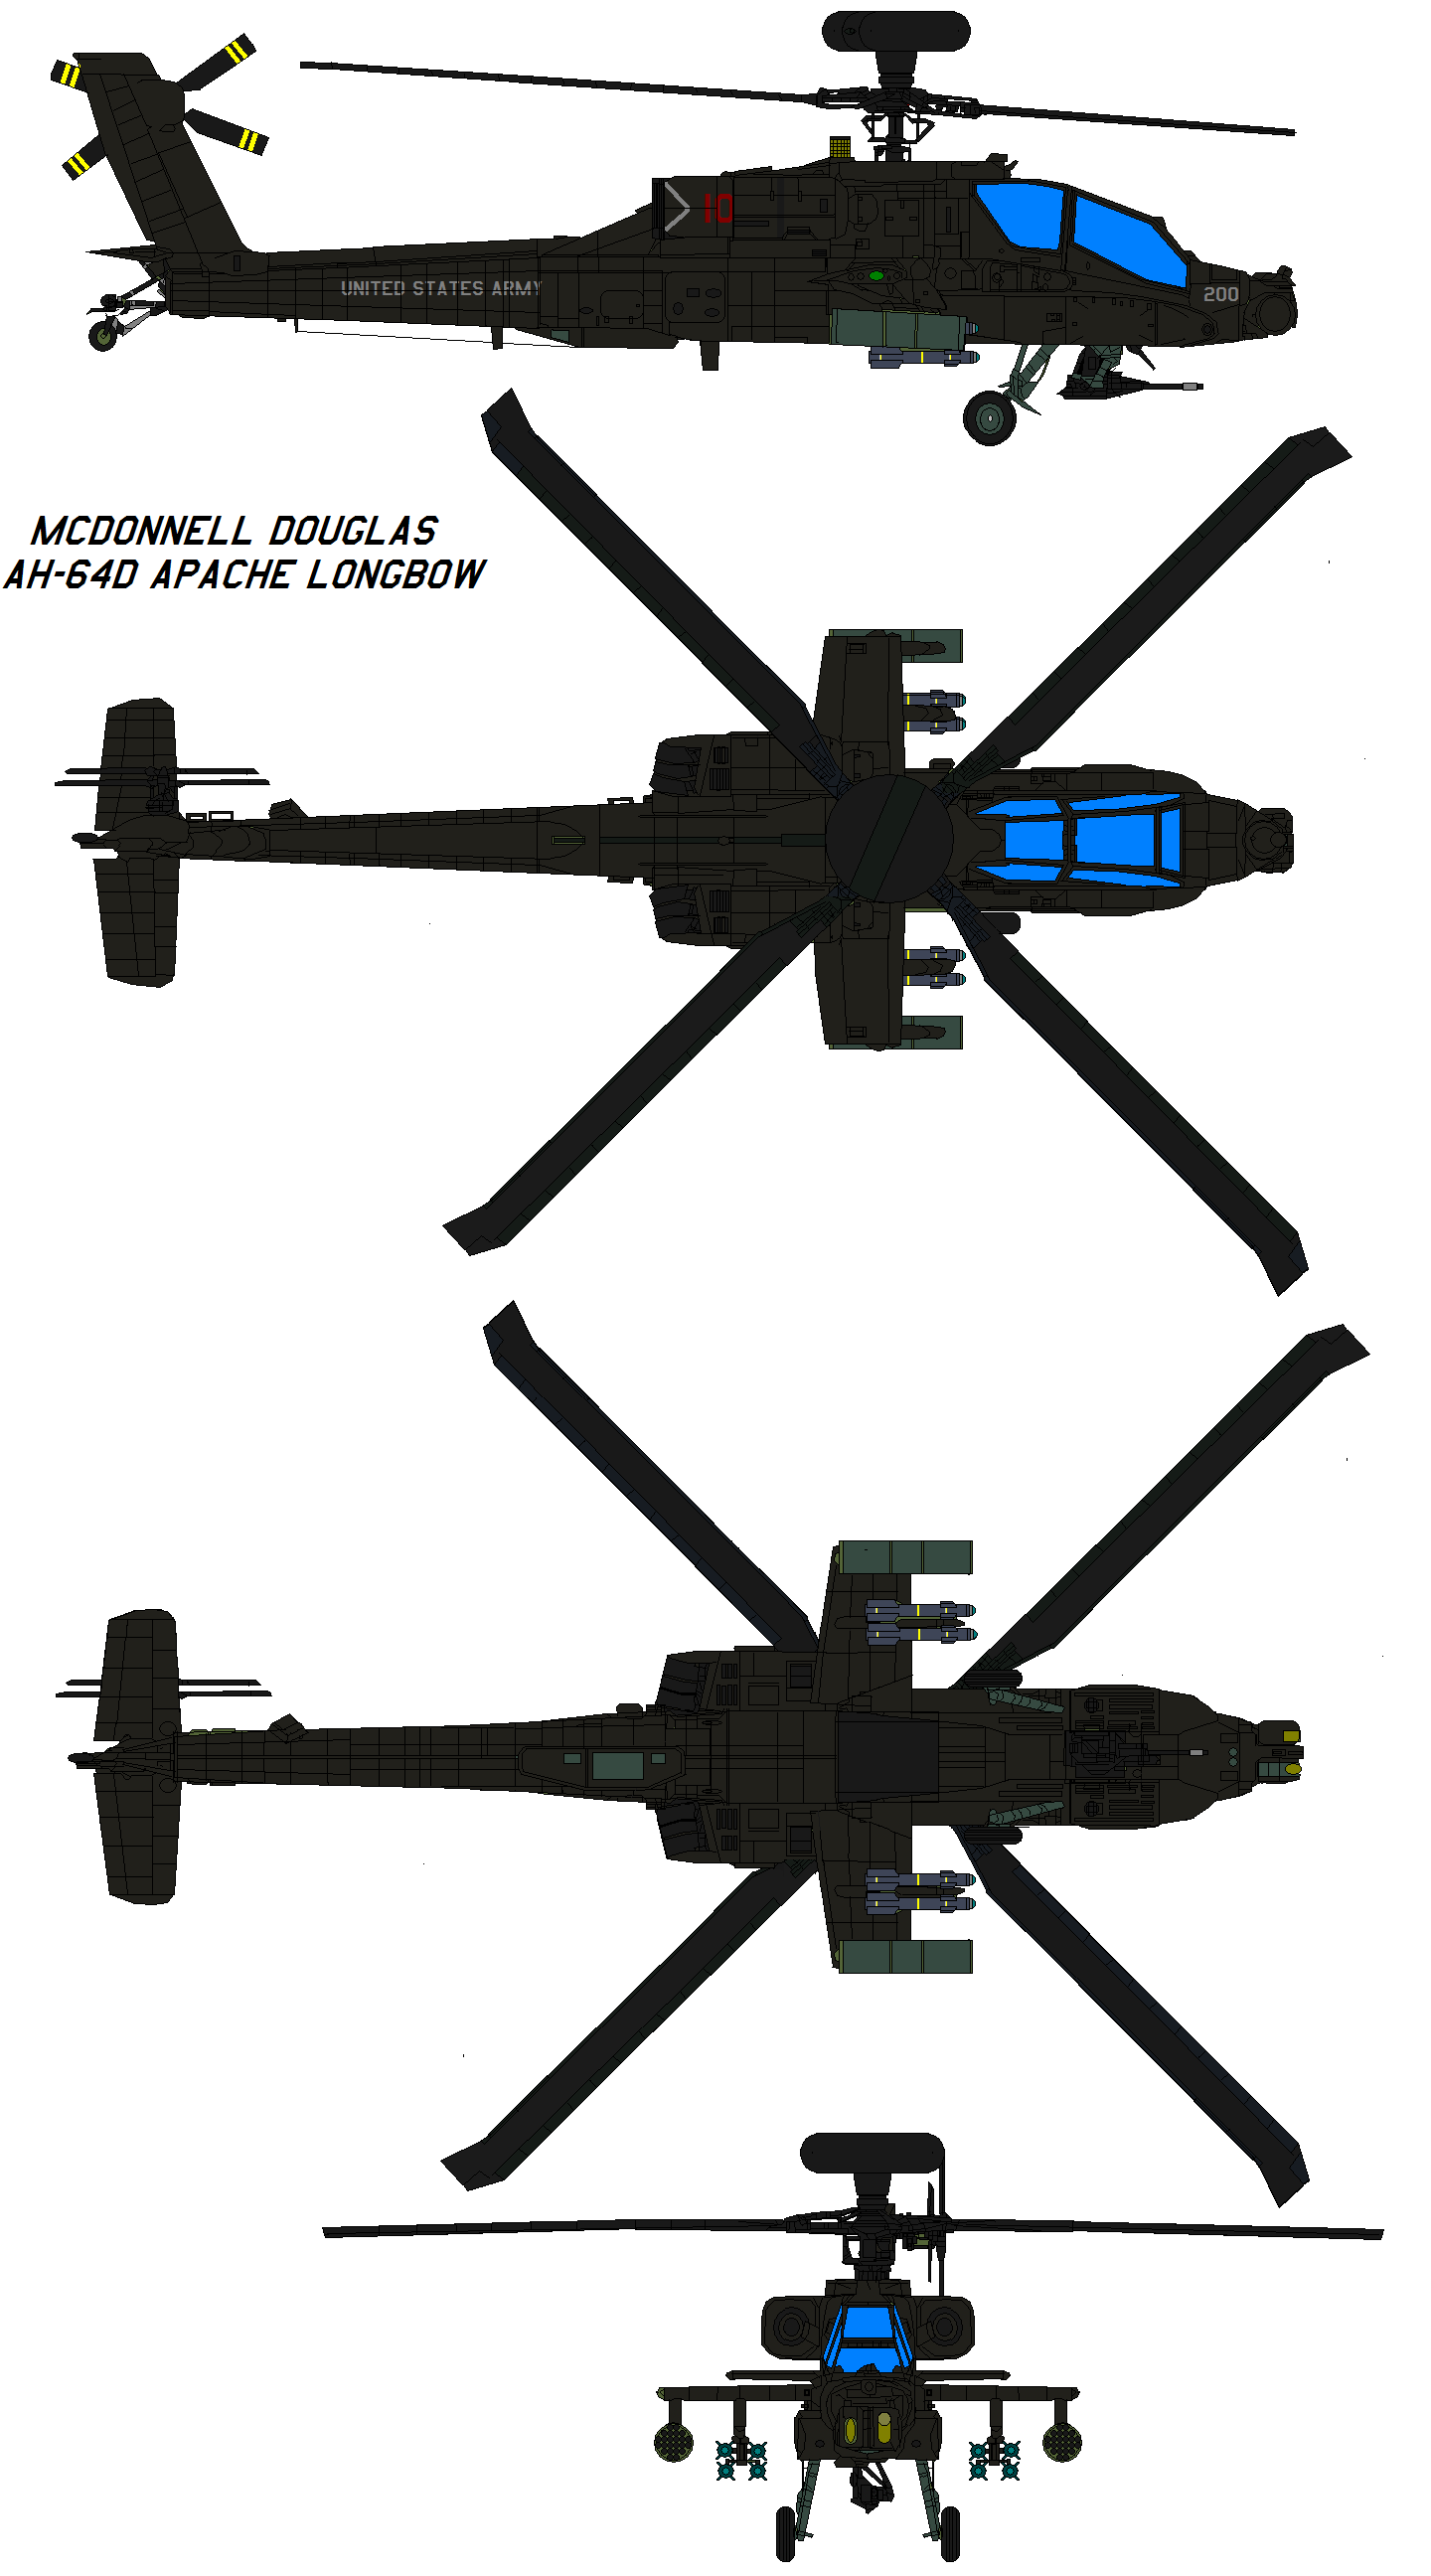 rc helicopter main blades with Ah 64d Apache Longbow 99262224 on S 76 together with Fixed Vs Collective Pitch furthermore Sab Goblin 700 Review also AH 64D Apache Longbow 99262224 besides Night 230 S Bnf Basic With Safe Technology Blh1550.